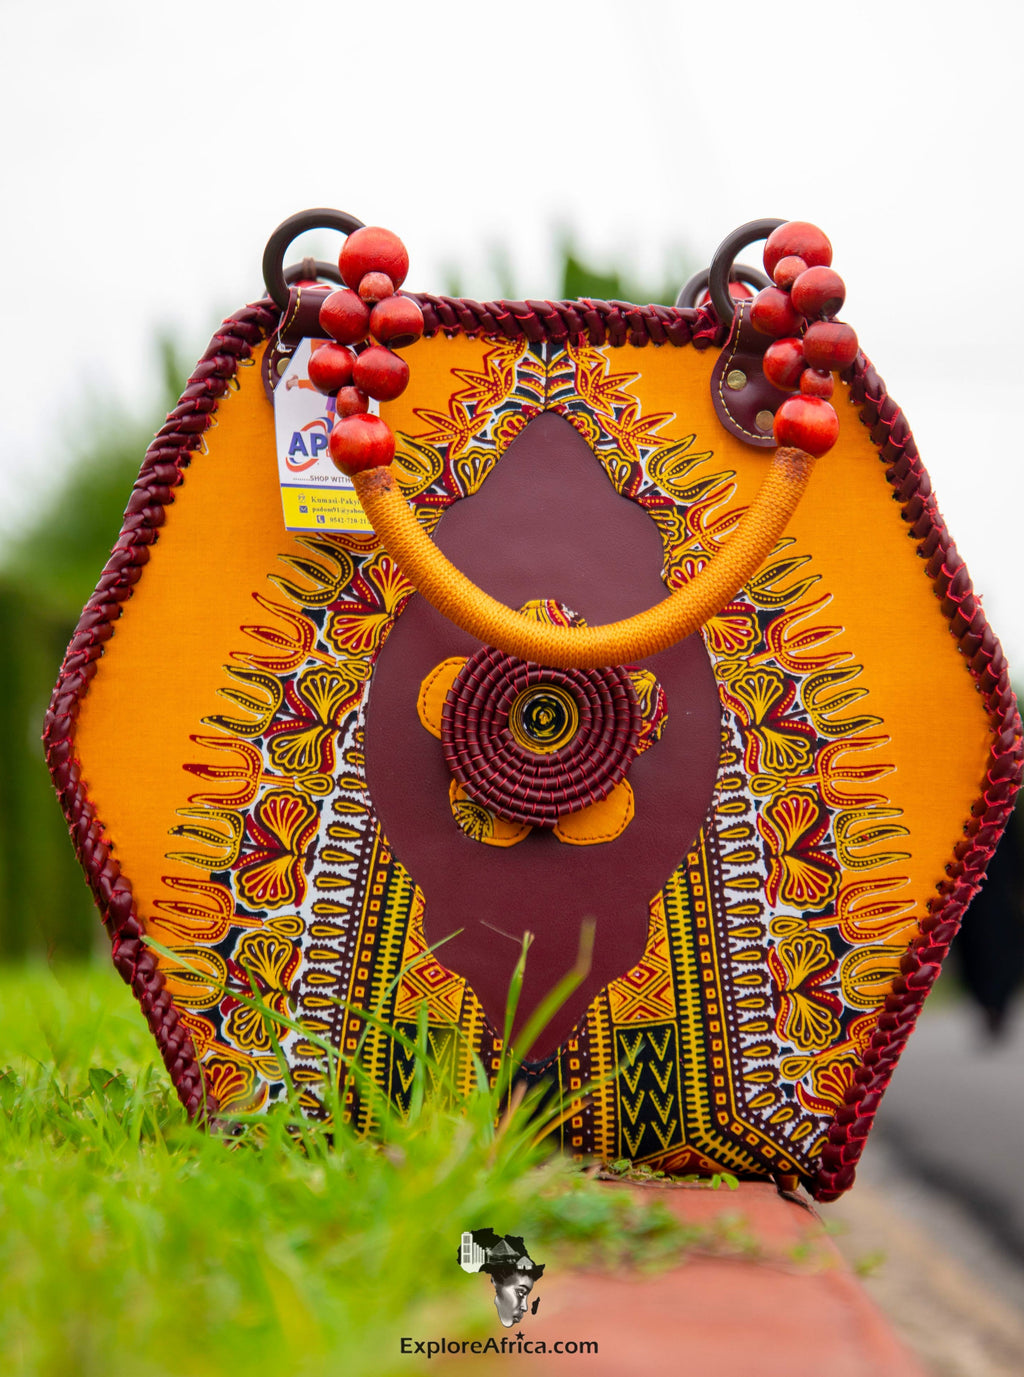 Explore Africa - African Orange Dashiki Handbag